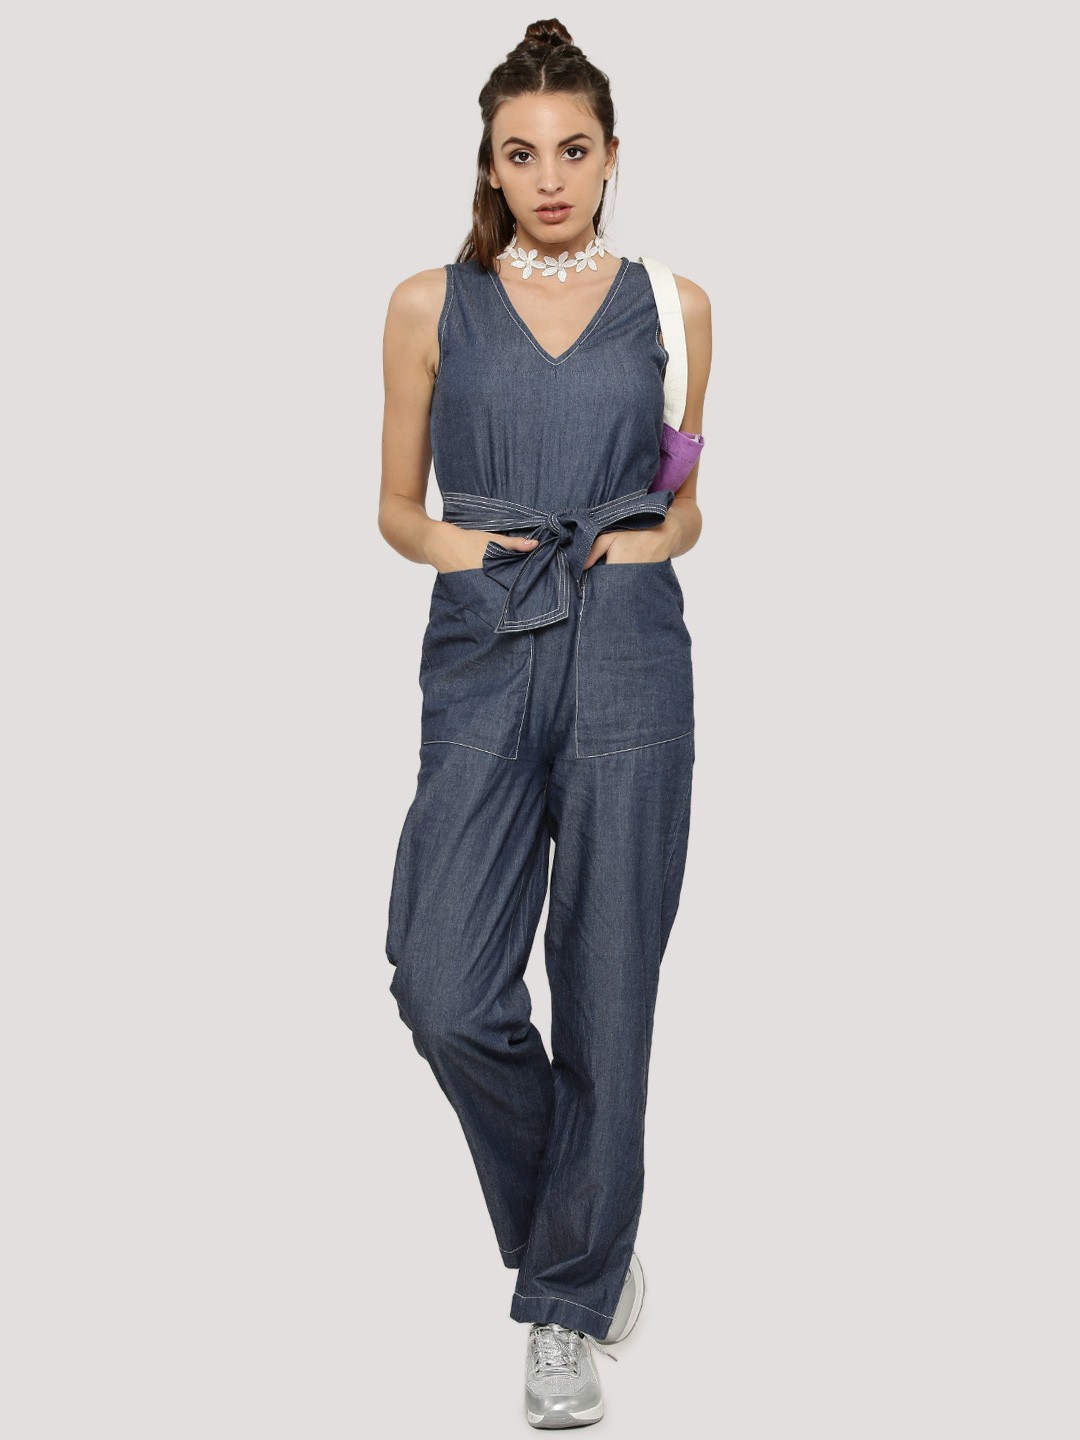 Buy KOOVS Stitch Detail Denim Jumpsuit For Women - Womenu0026#39;s Blue/Multi/Green Jumpsuits Online In ...